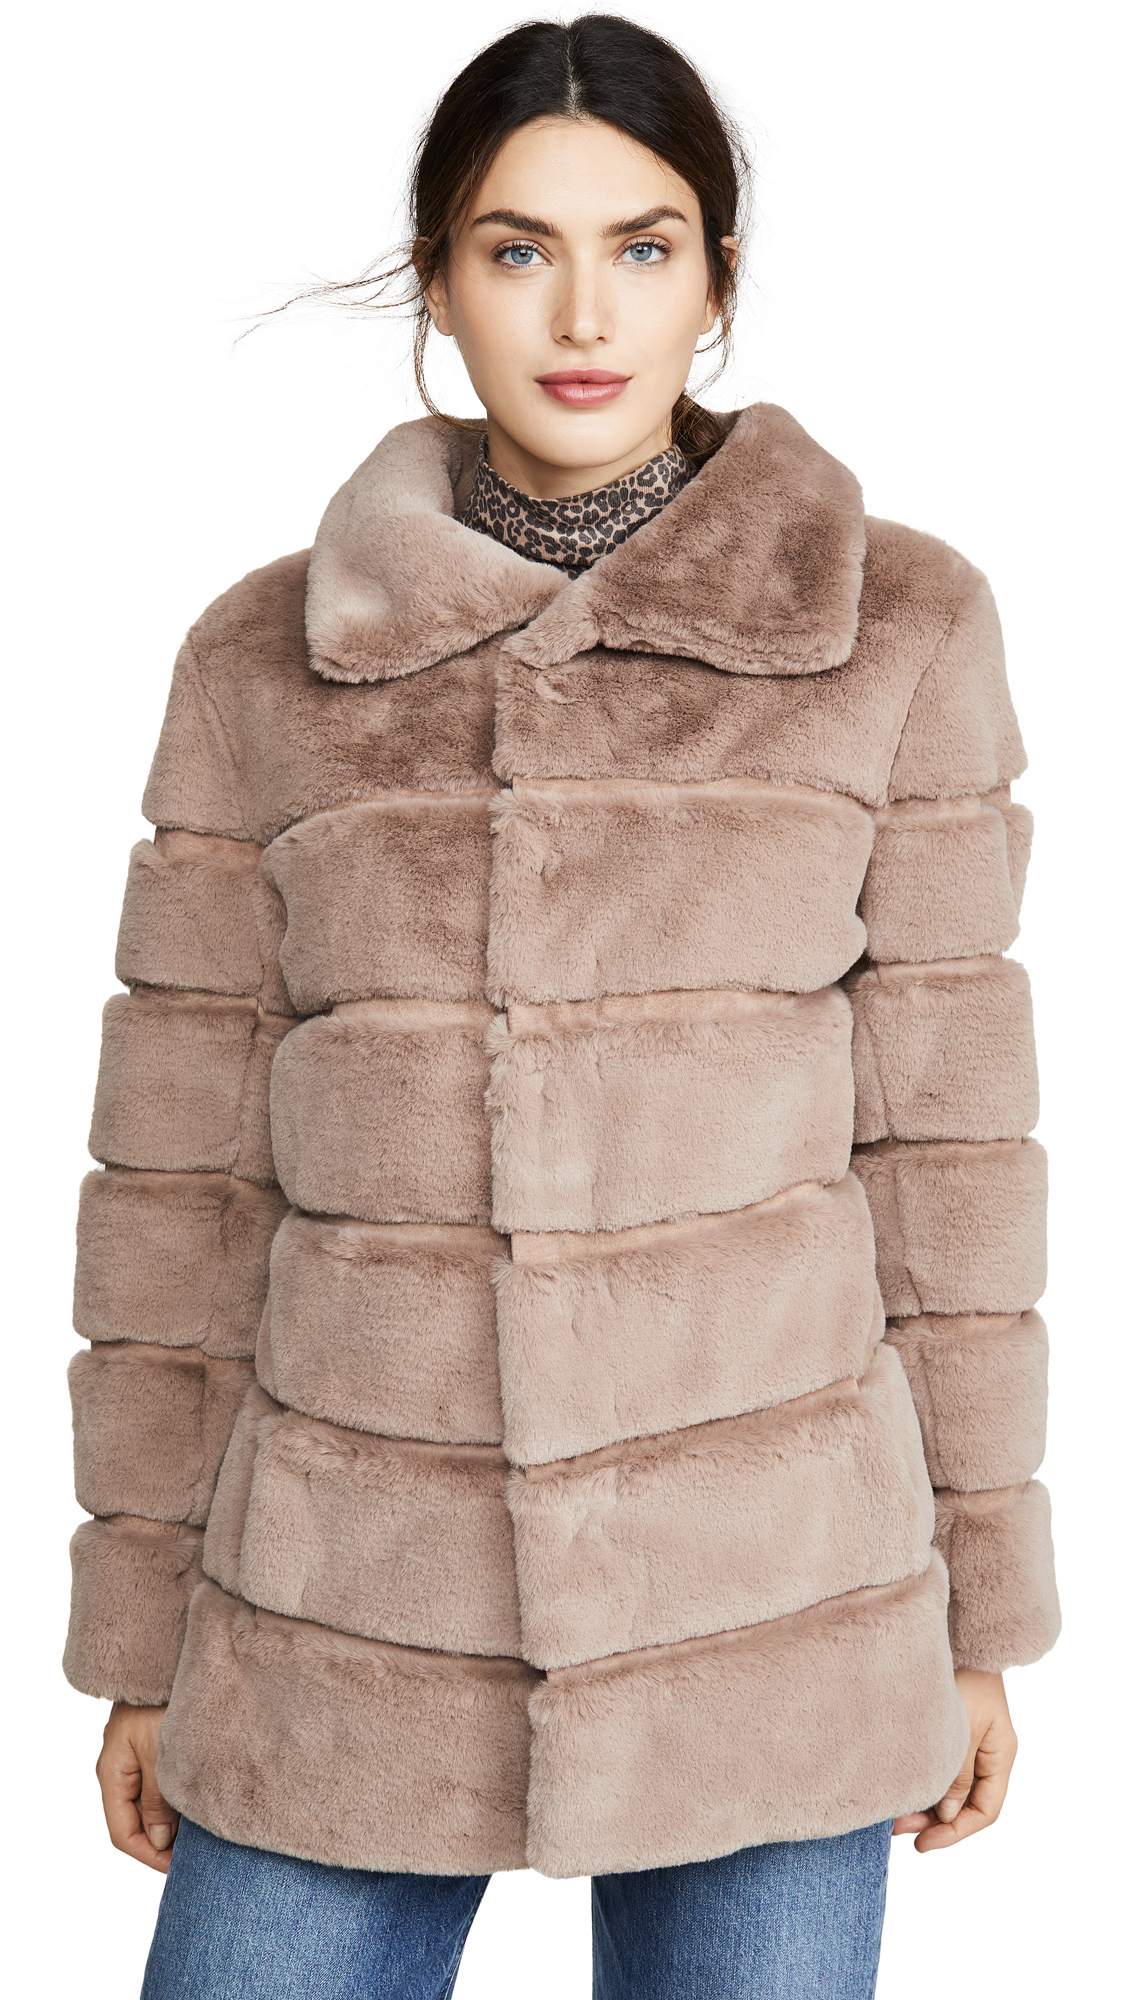 Buy Generation Love Taylia Faux Fur Jacket online beautiful Generation Love Clothing, Jackets